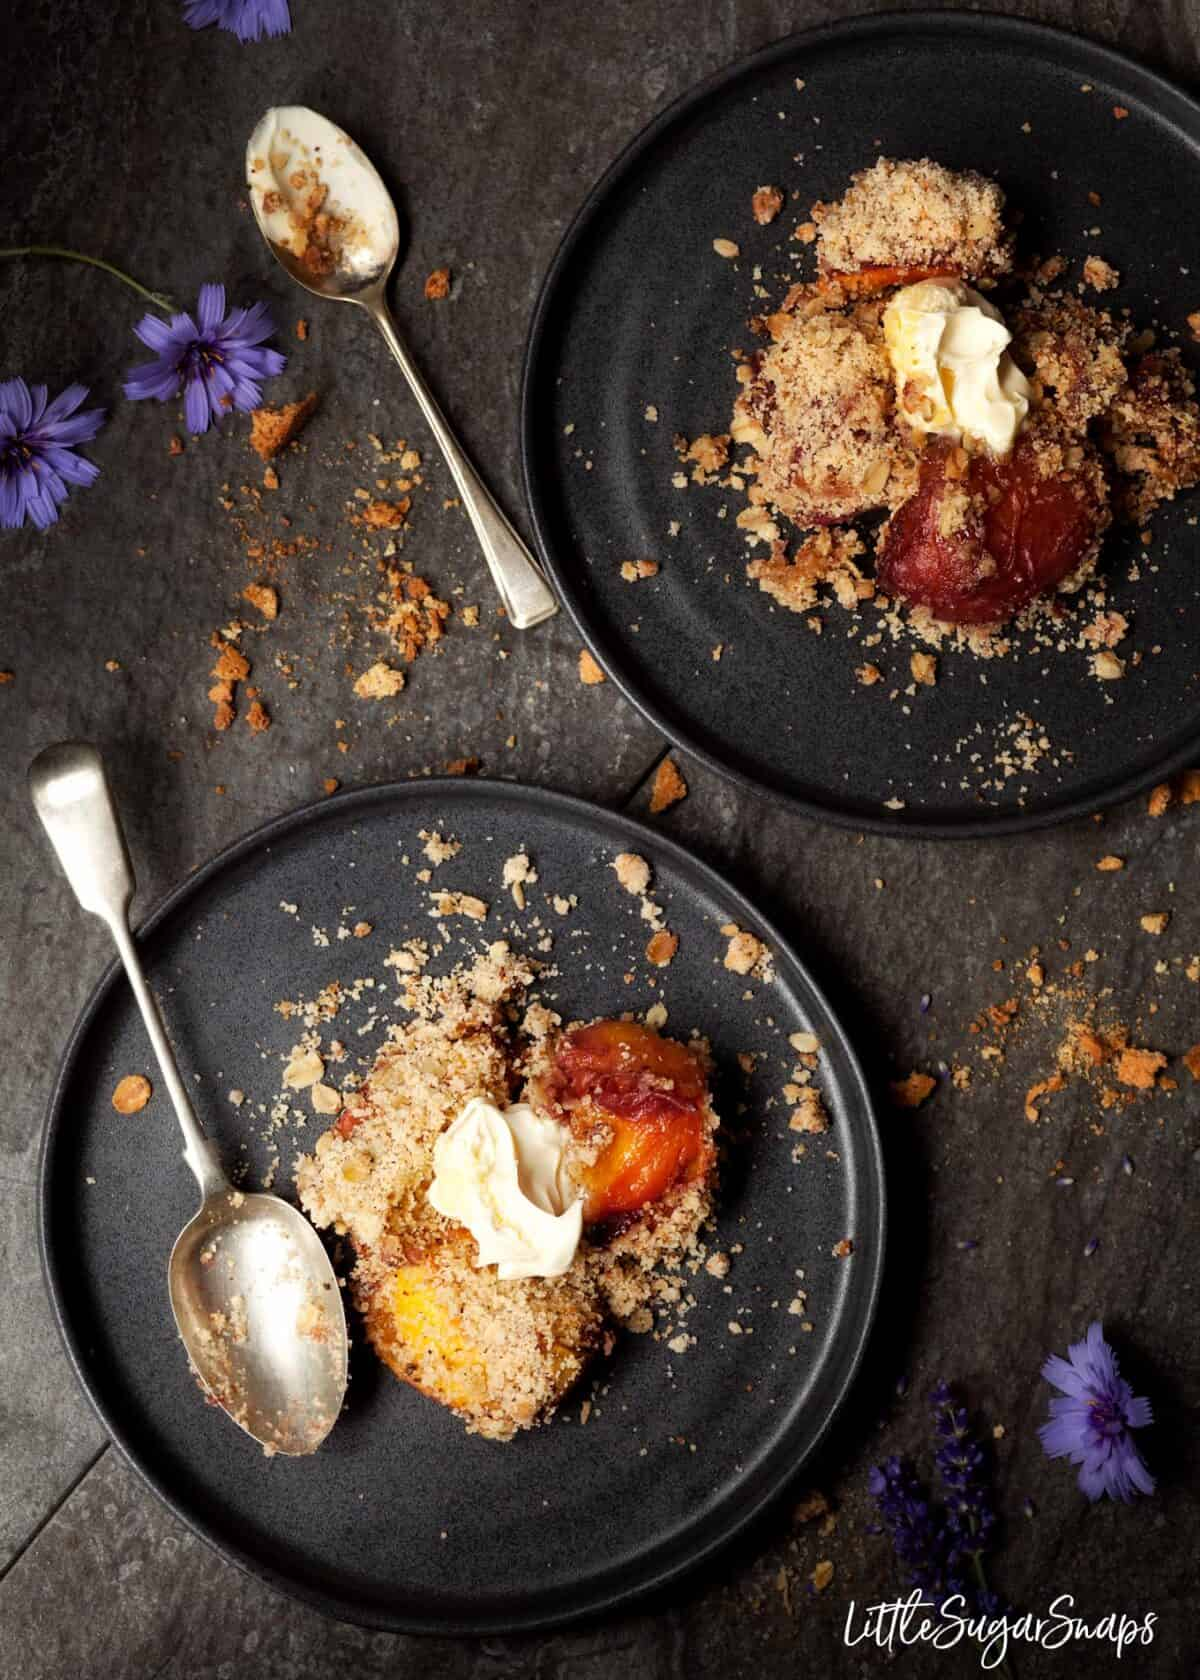 Two plates of peach crumble with clotted cream